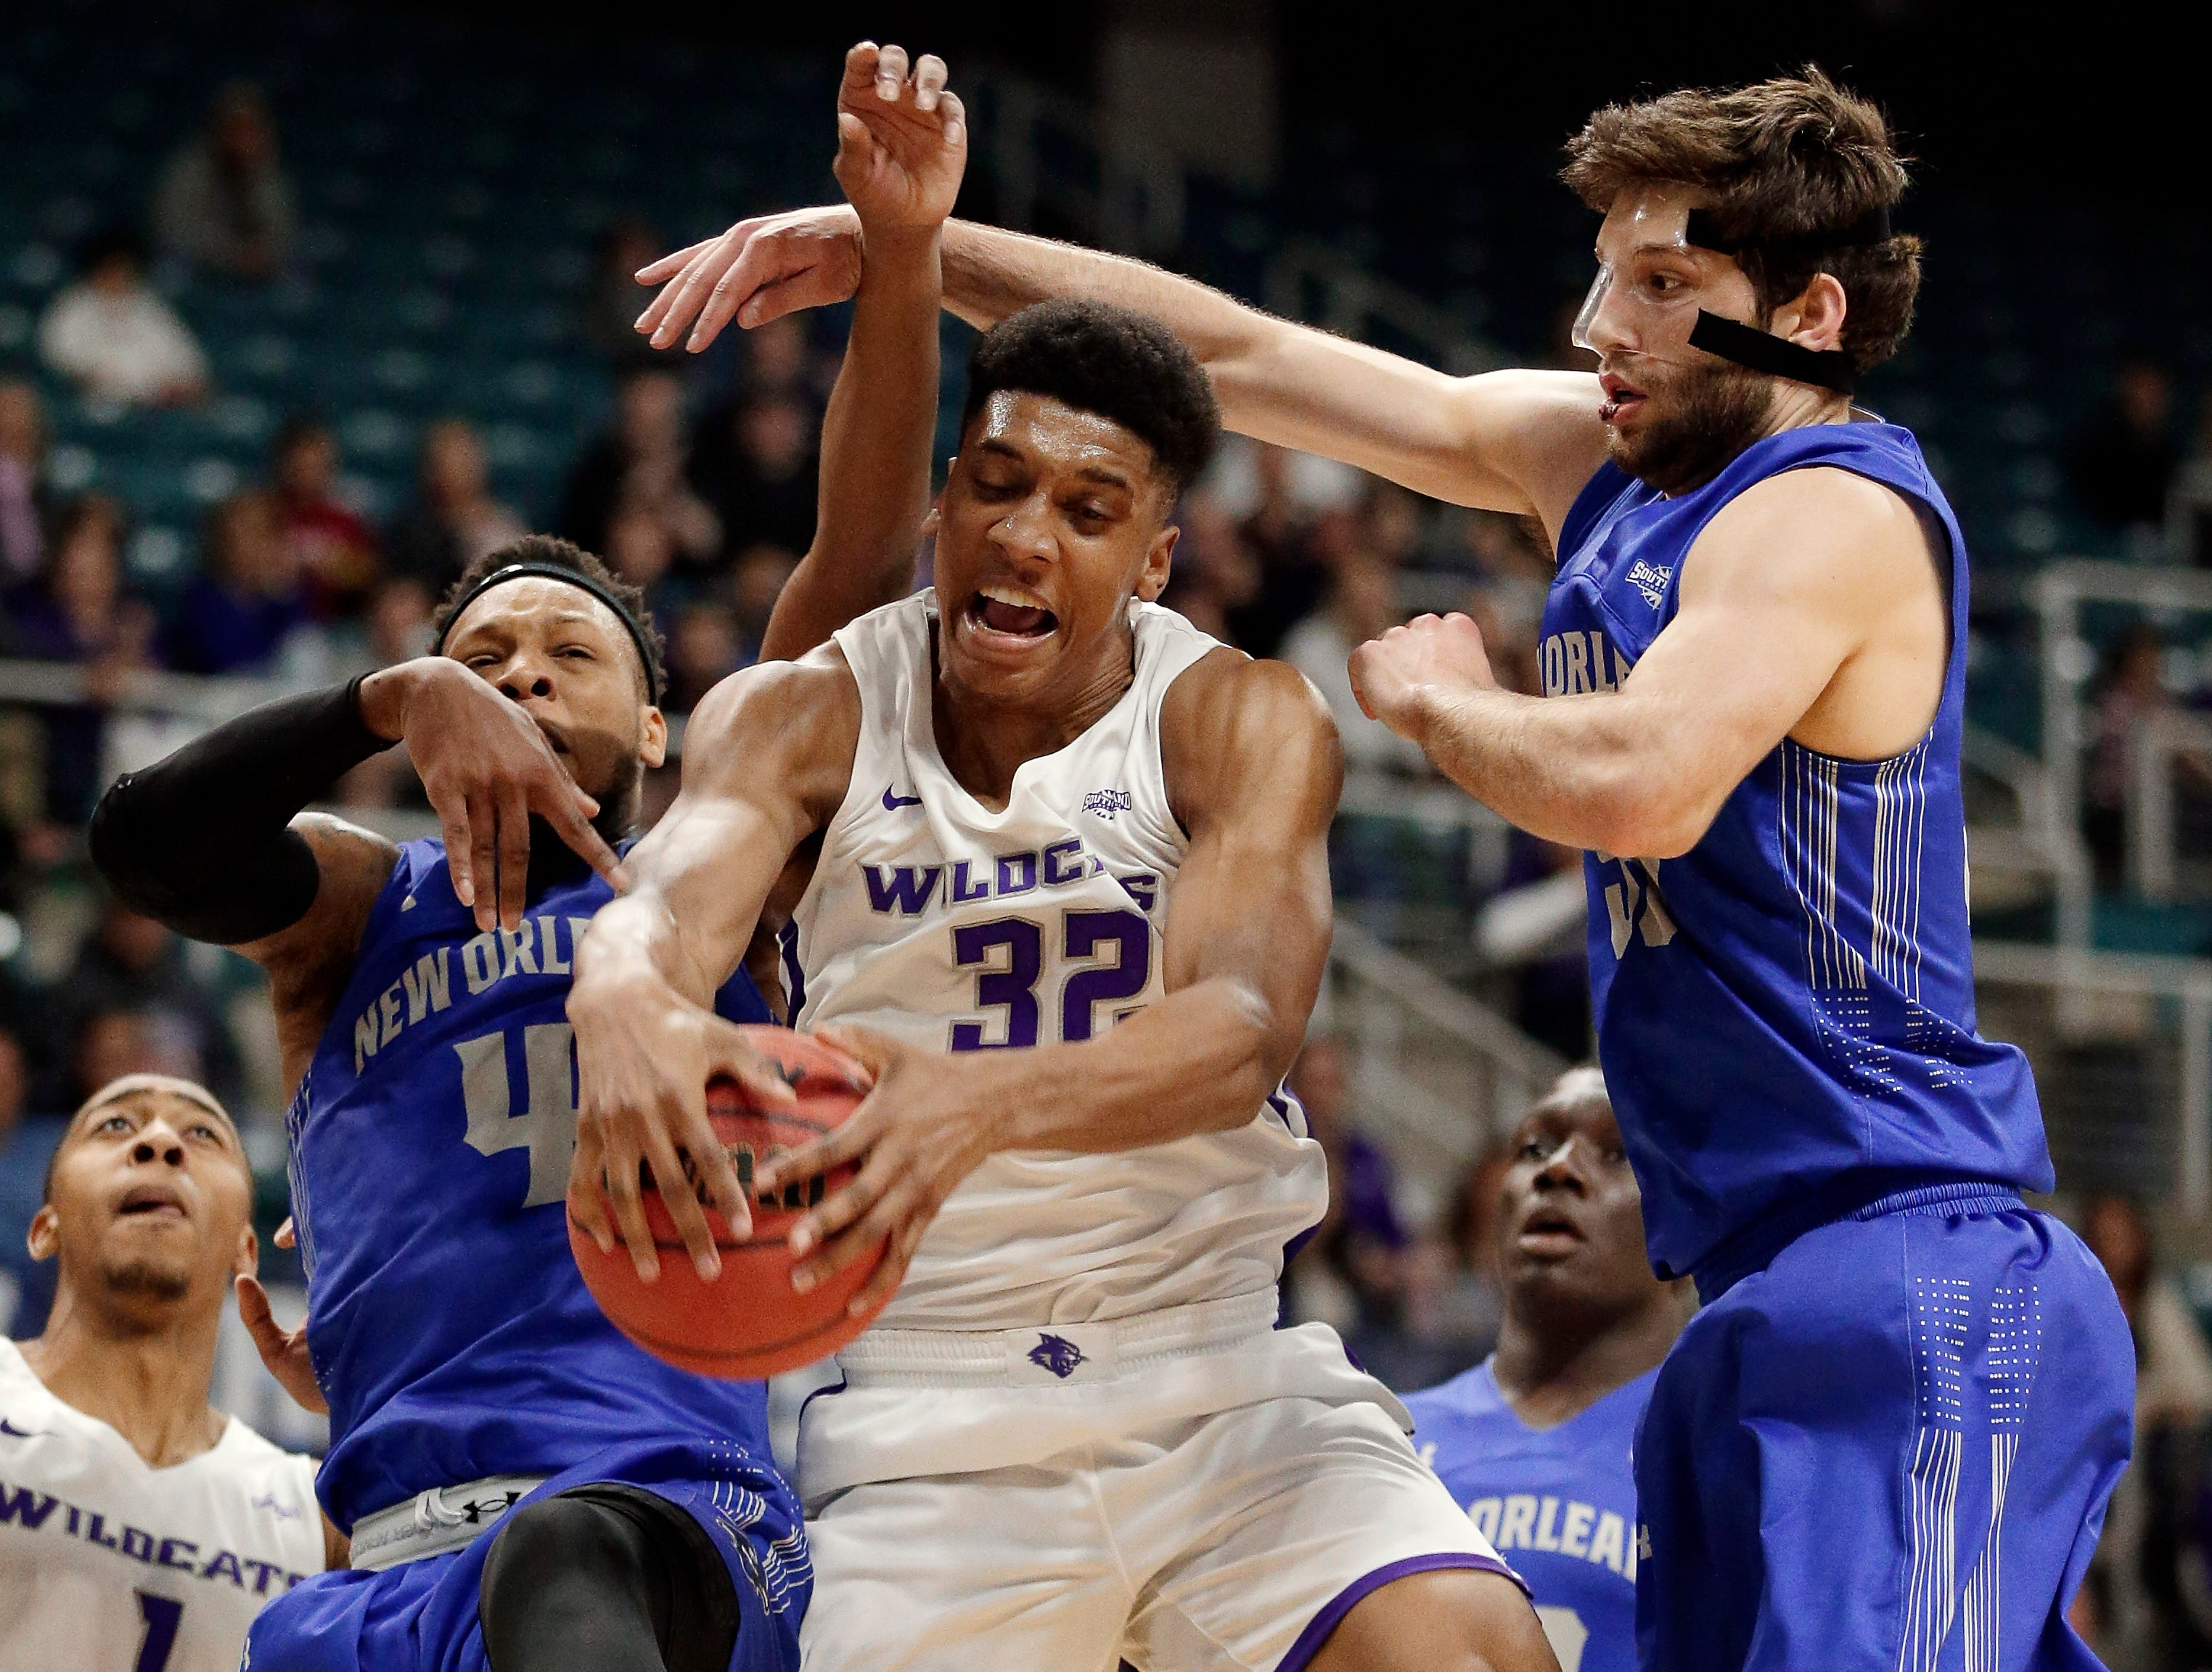 Abilene Christian forward Joe Pleasant (32) pulls in a rebound between New Orleans guard Bryson Robinson (4) and forward Scott Plaisance Jr., right, during the first half of an NCAA college basketball game for the Southland Conference men's tournament title Saturday, March 16, 2019, in Katy, Texas.